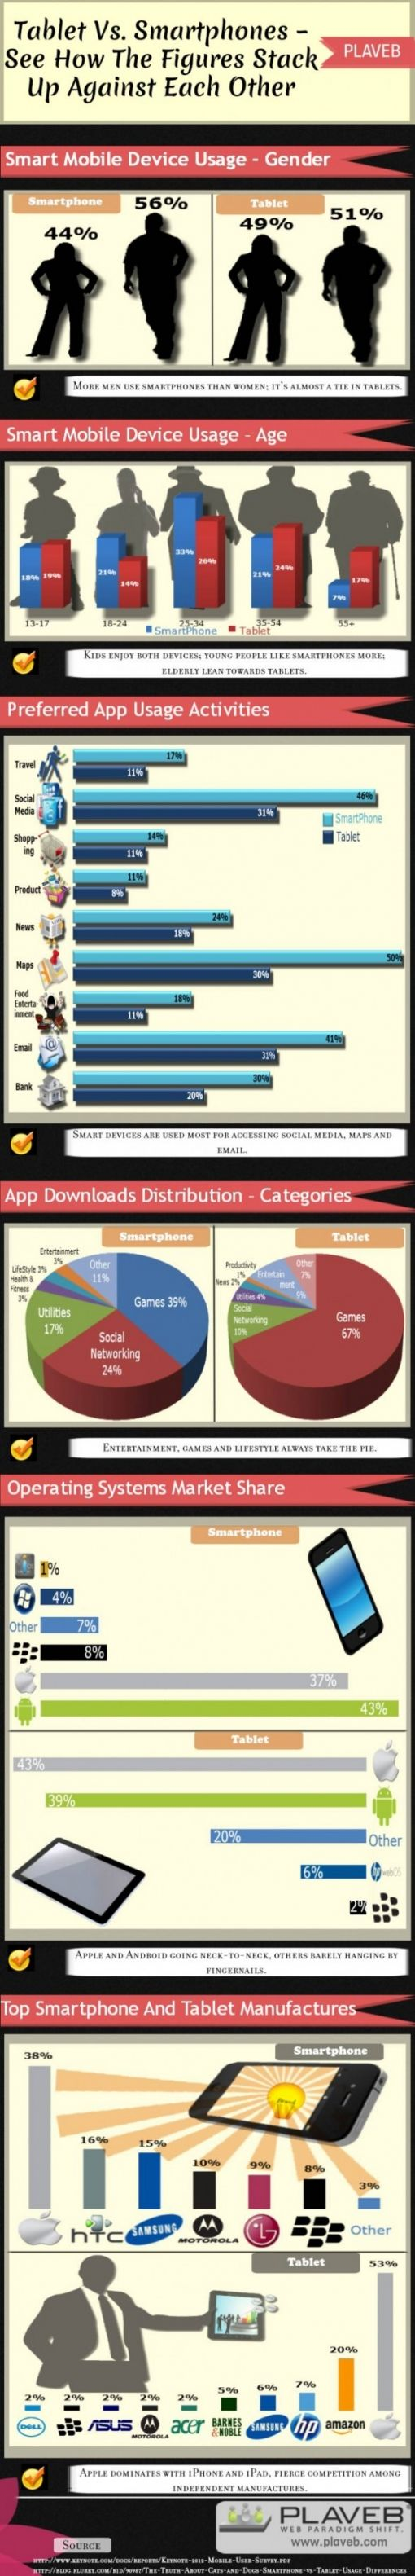 tablet-vs-smartphones--see-how-the-figures-stack-up-against-each-other--infographic_50ff7cd579ea1_w587